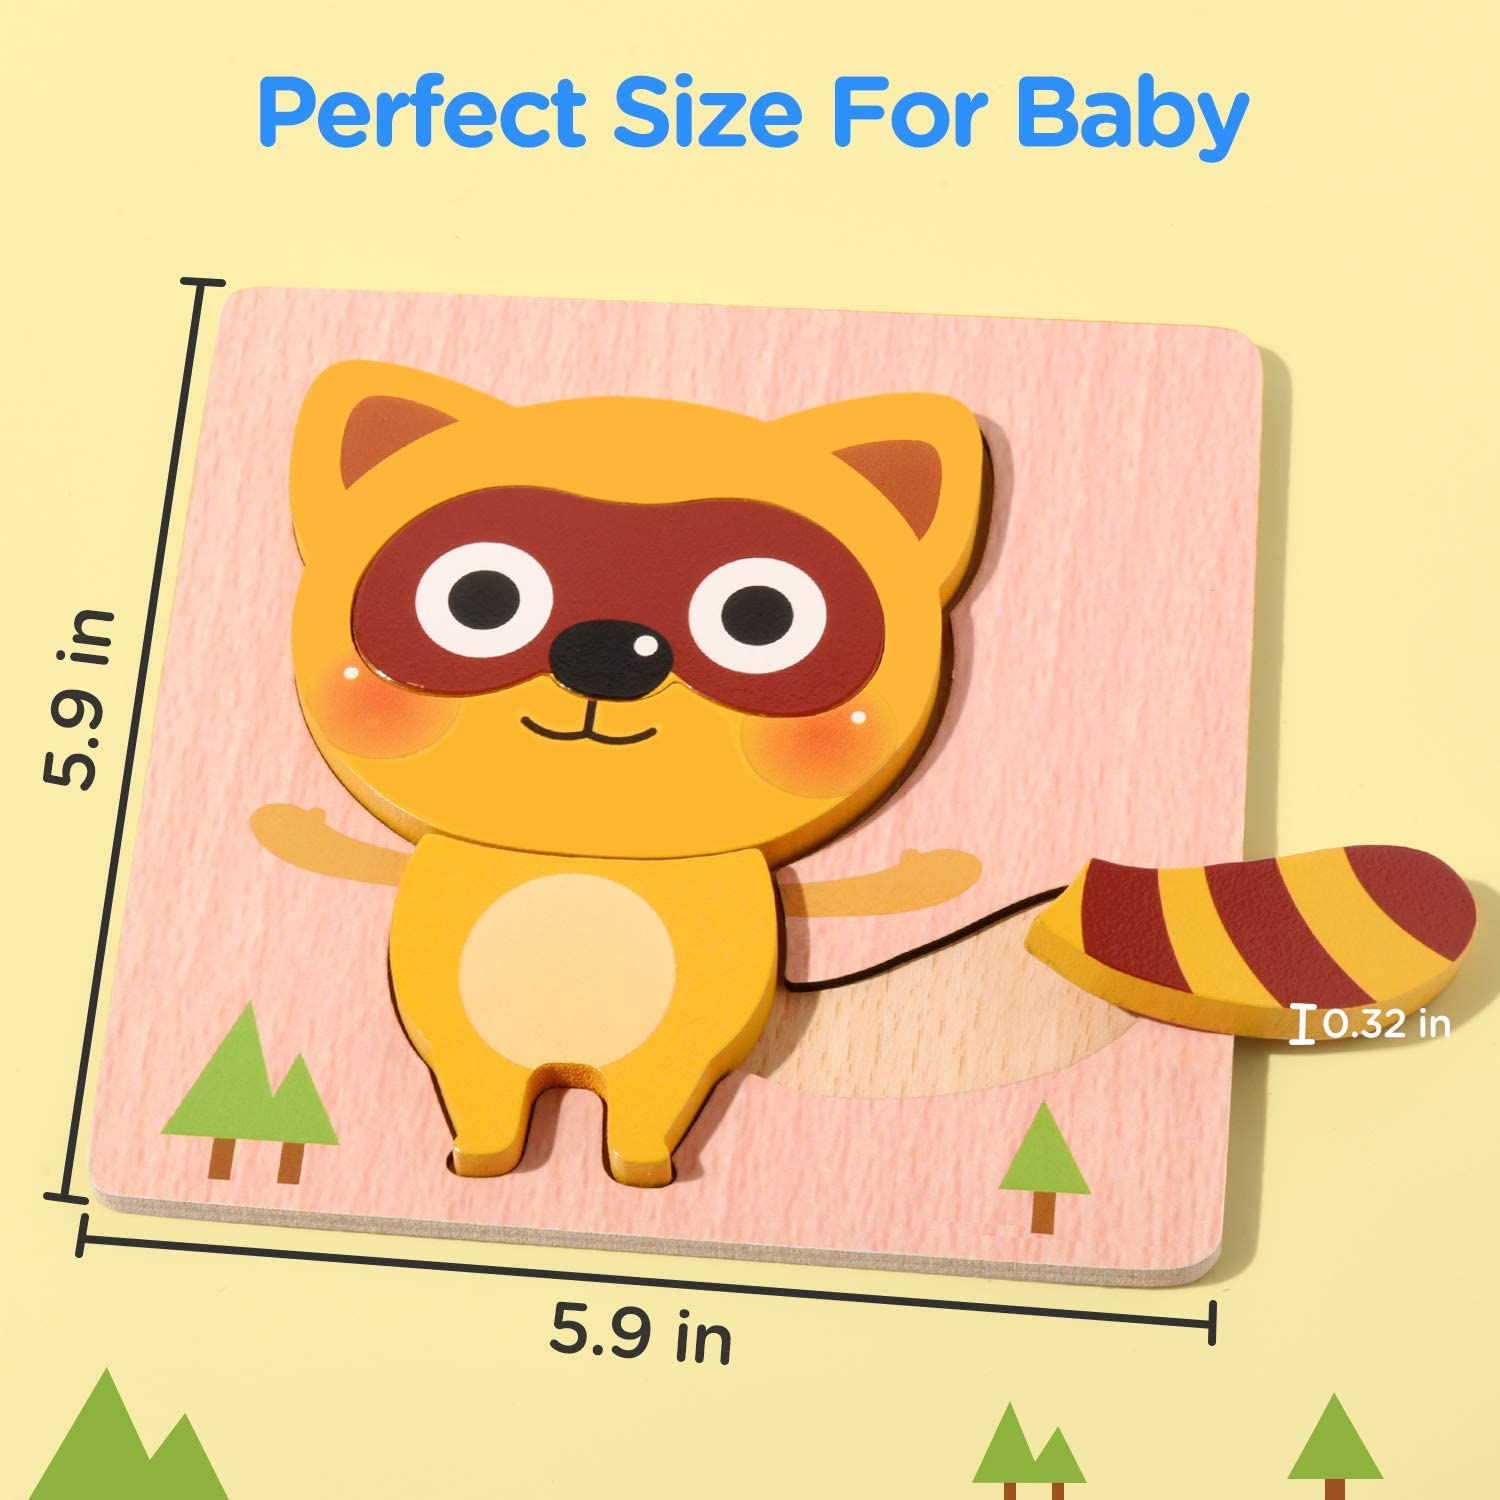 Joyjoz Wooden Jigsaw Puzzles 4 PCS Wooden Animals Montessori Toys with Storage Bag Educational Toys for 3 Year Olds Kids Boys Girls